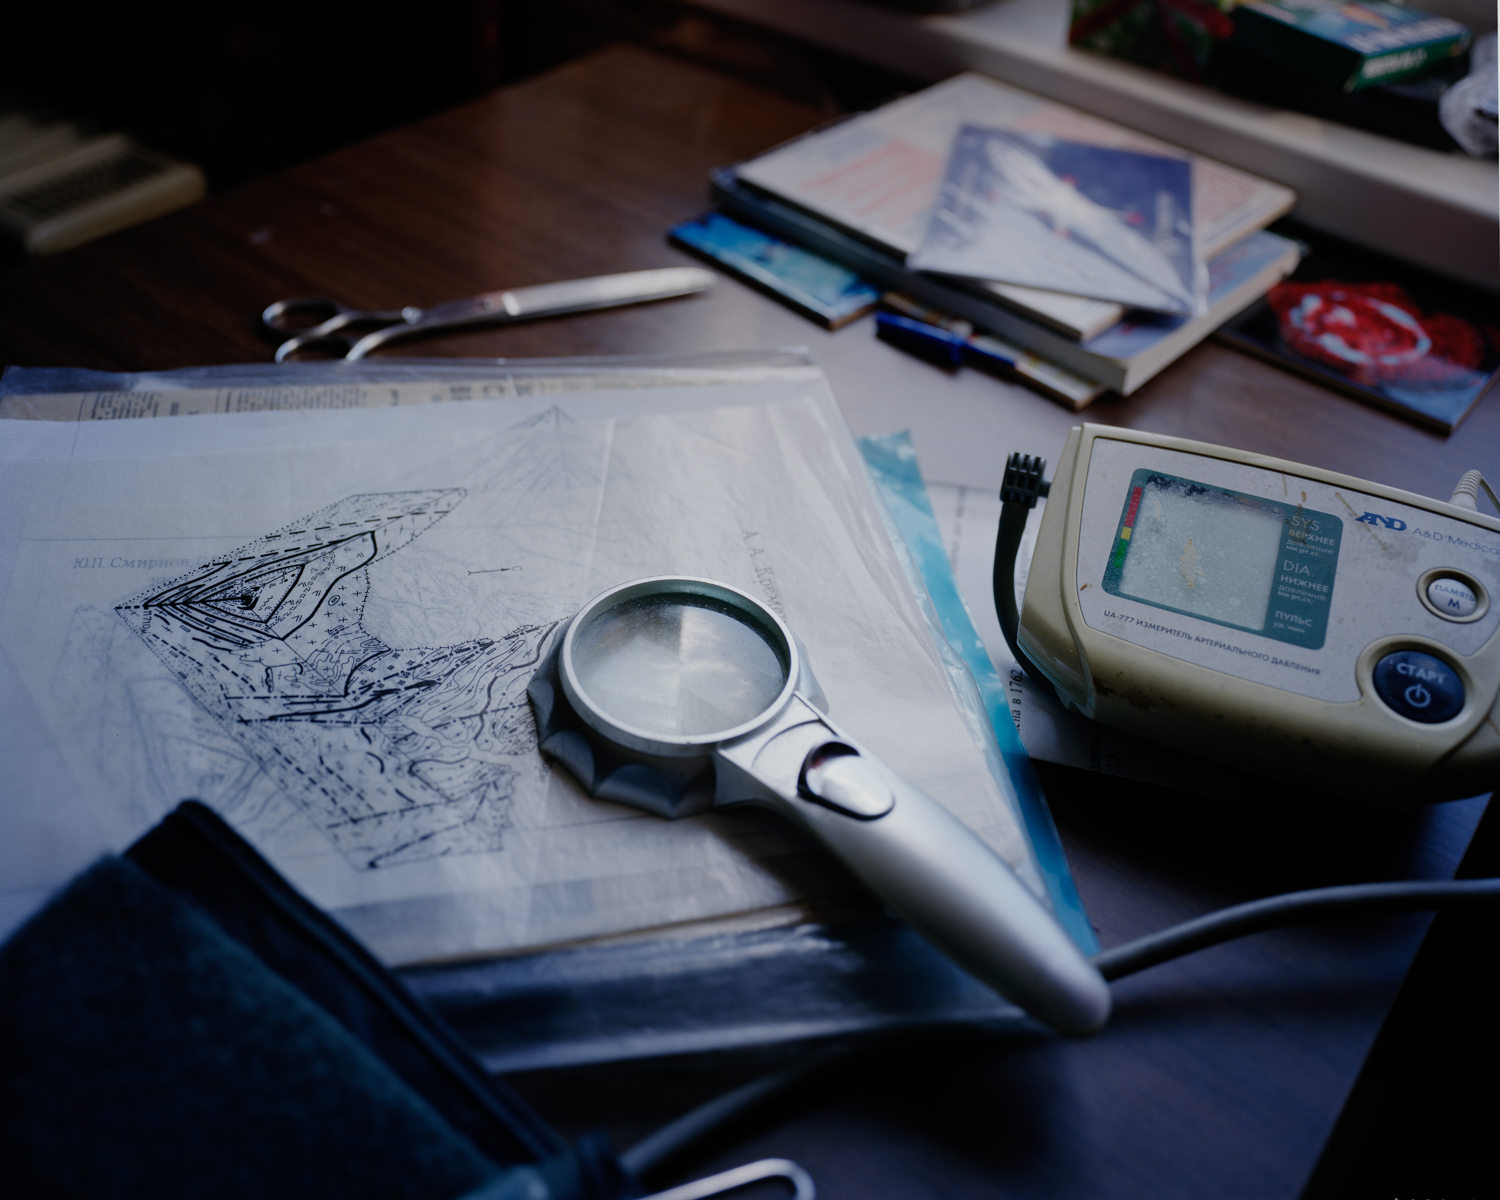 Smirnov's apartment was cluttered with ephemera related to the hole, his archives, and his medical devices.